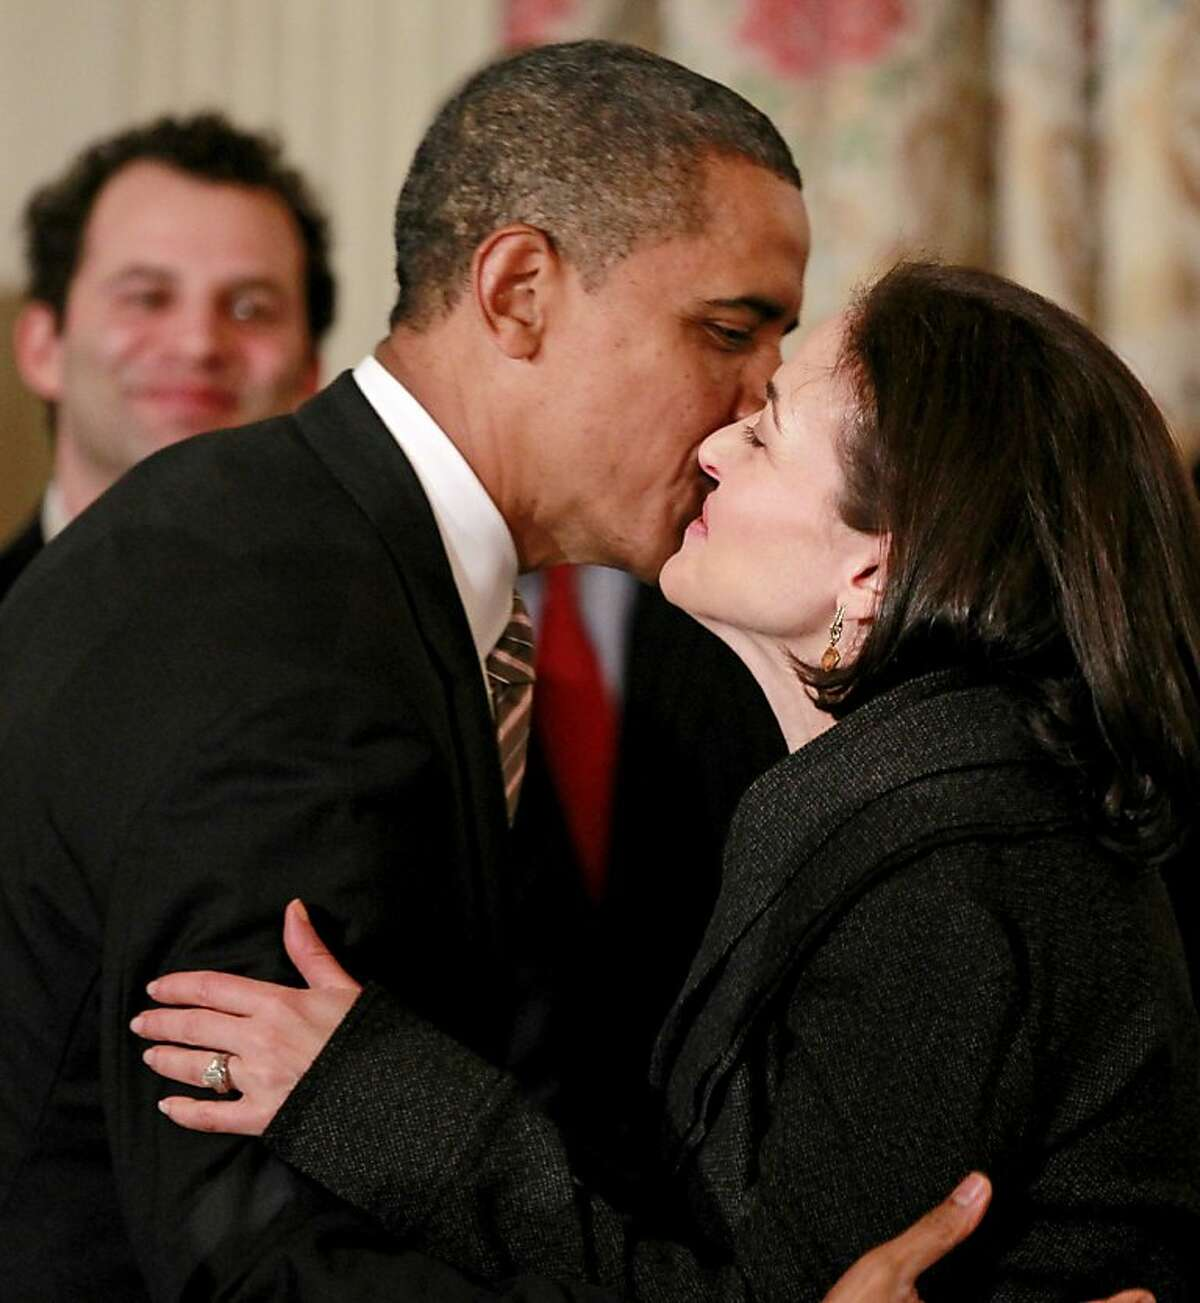 President Barack Obama greets Facebook CEO Sheryl Sandberg, Tuesday, Jan. 17, 2012, in the State Dining Room of the White House in Washington, before meeting with the Council on Jobs and Competitiveness. (AP Photo/Haraz N. Ghanbari)